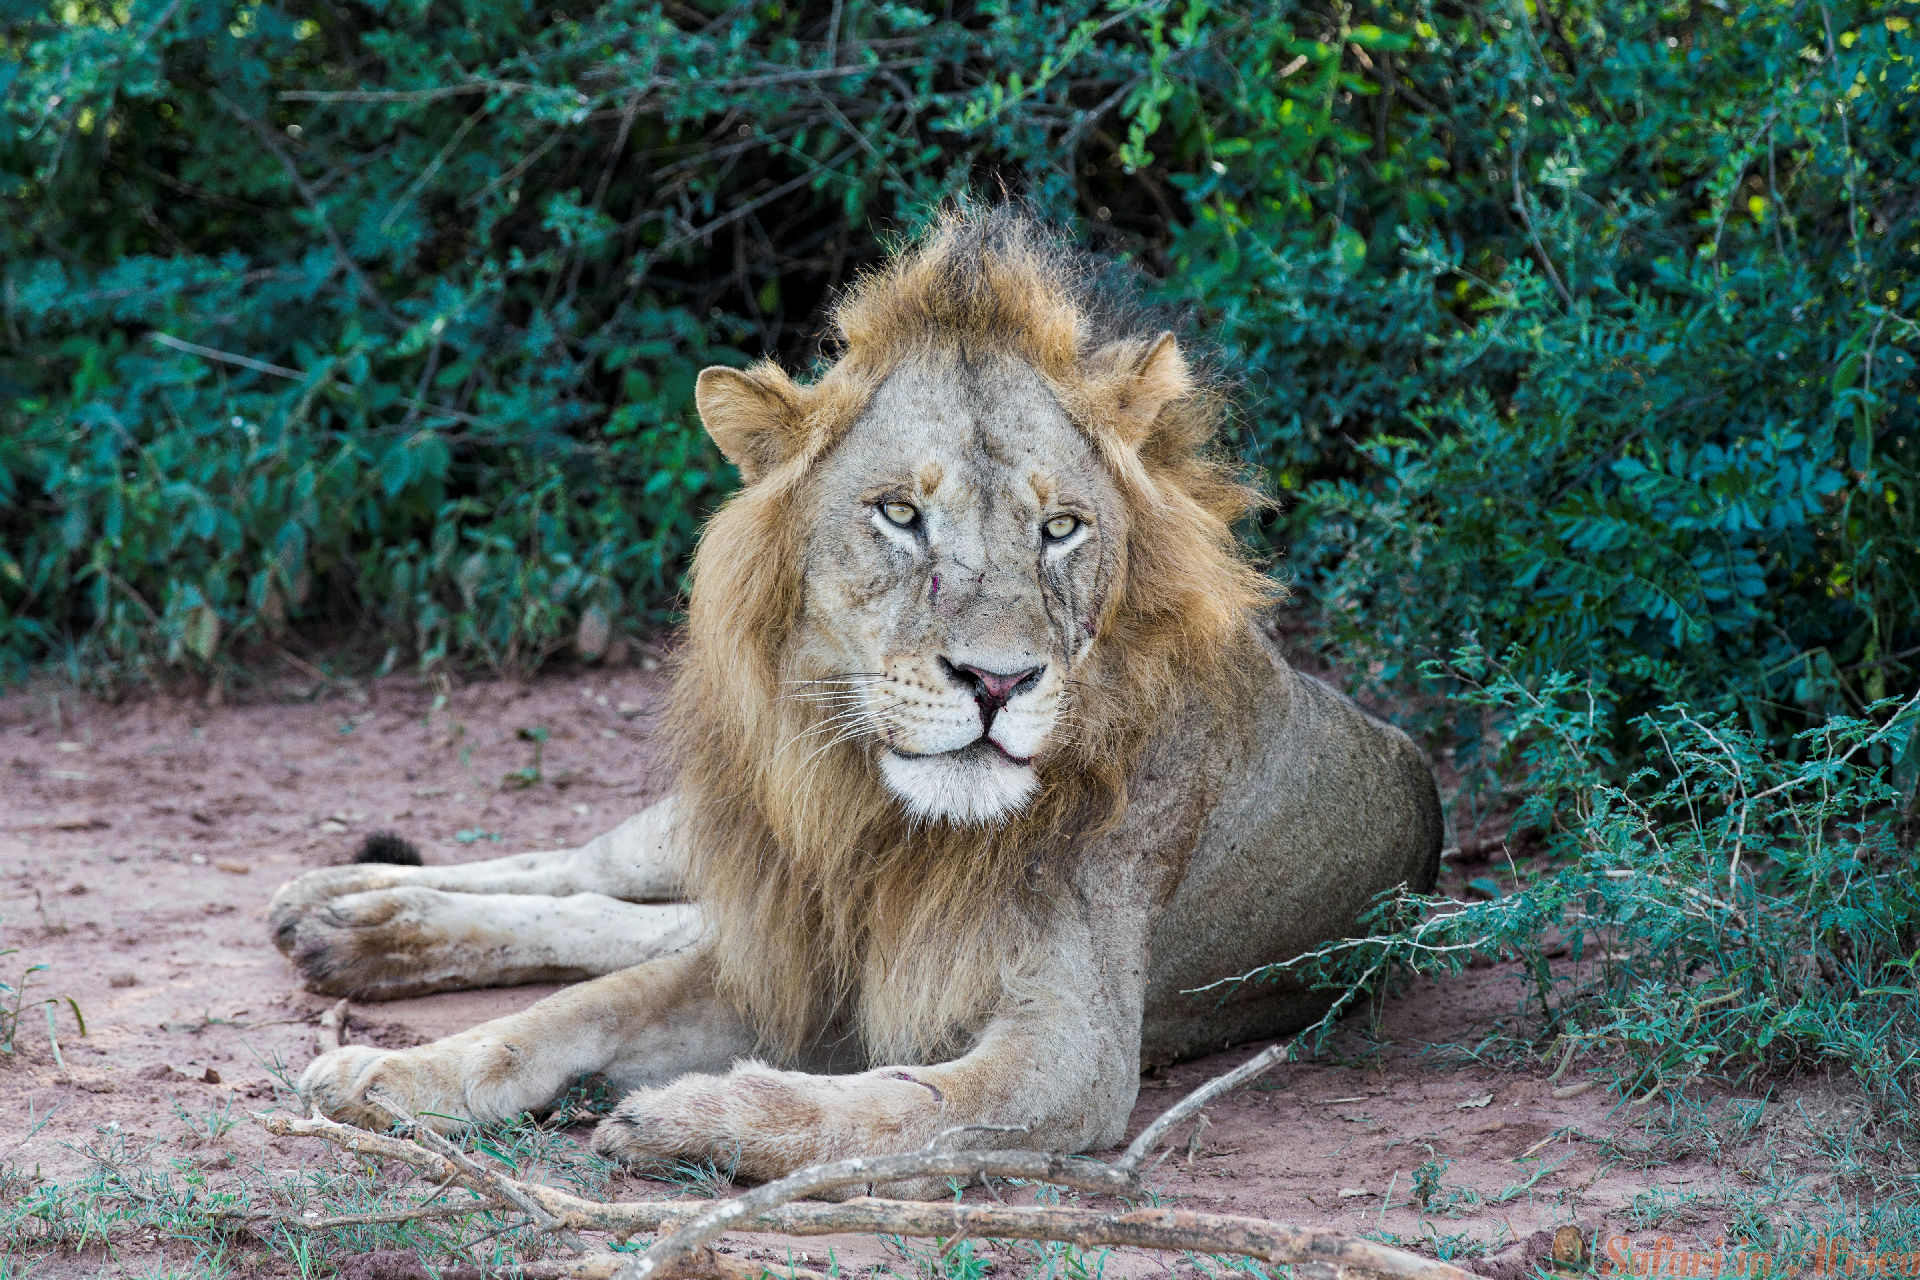 African Lion resting at the Murchison Falls National Park in Uganda, Africa